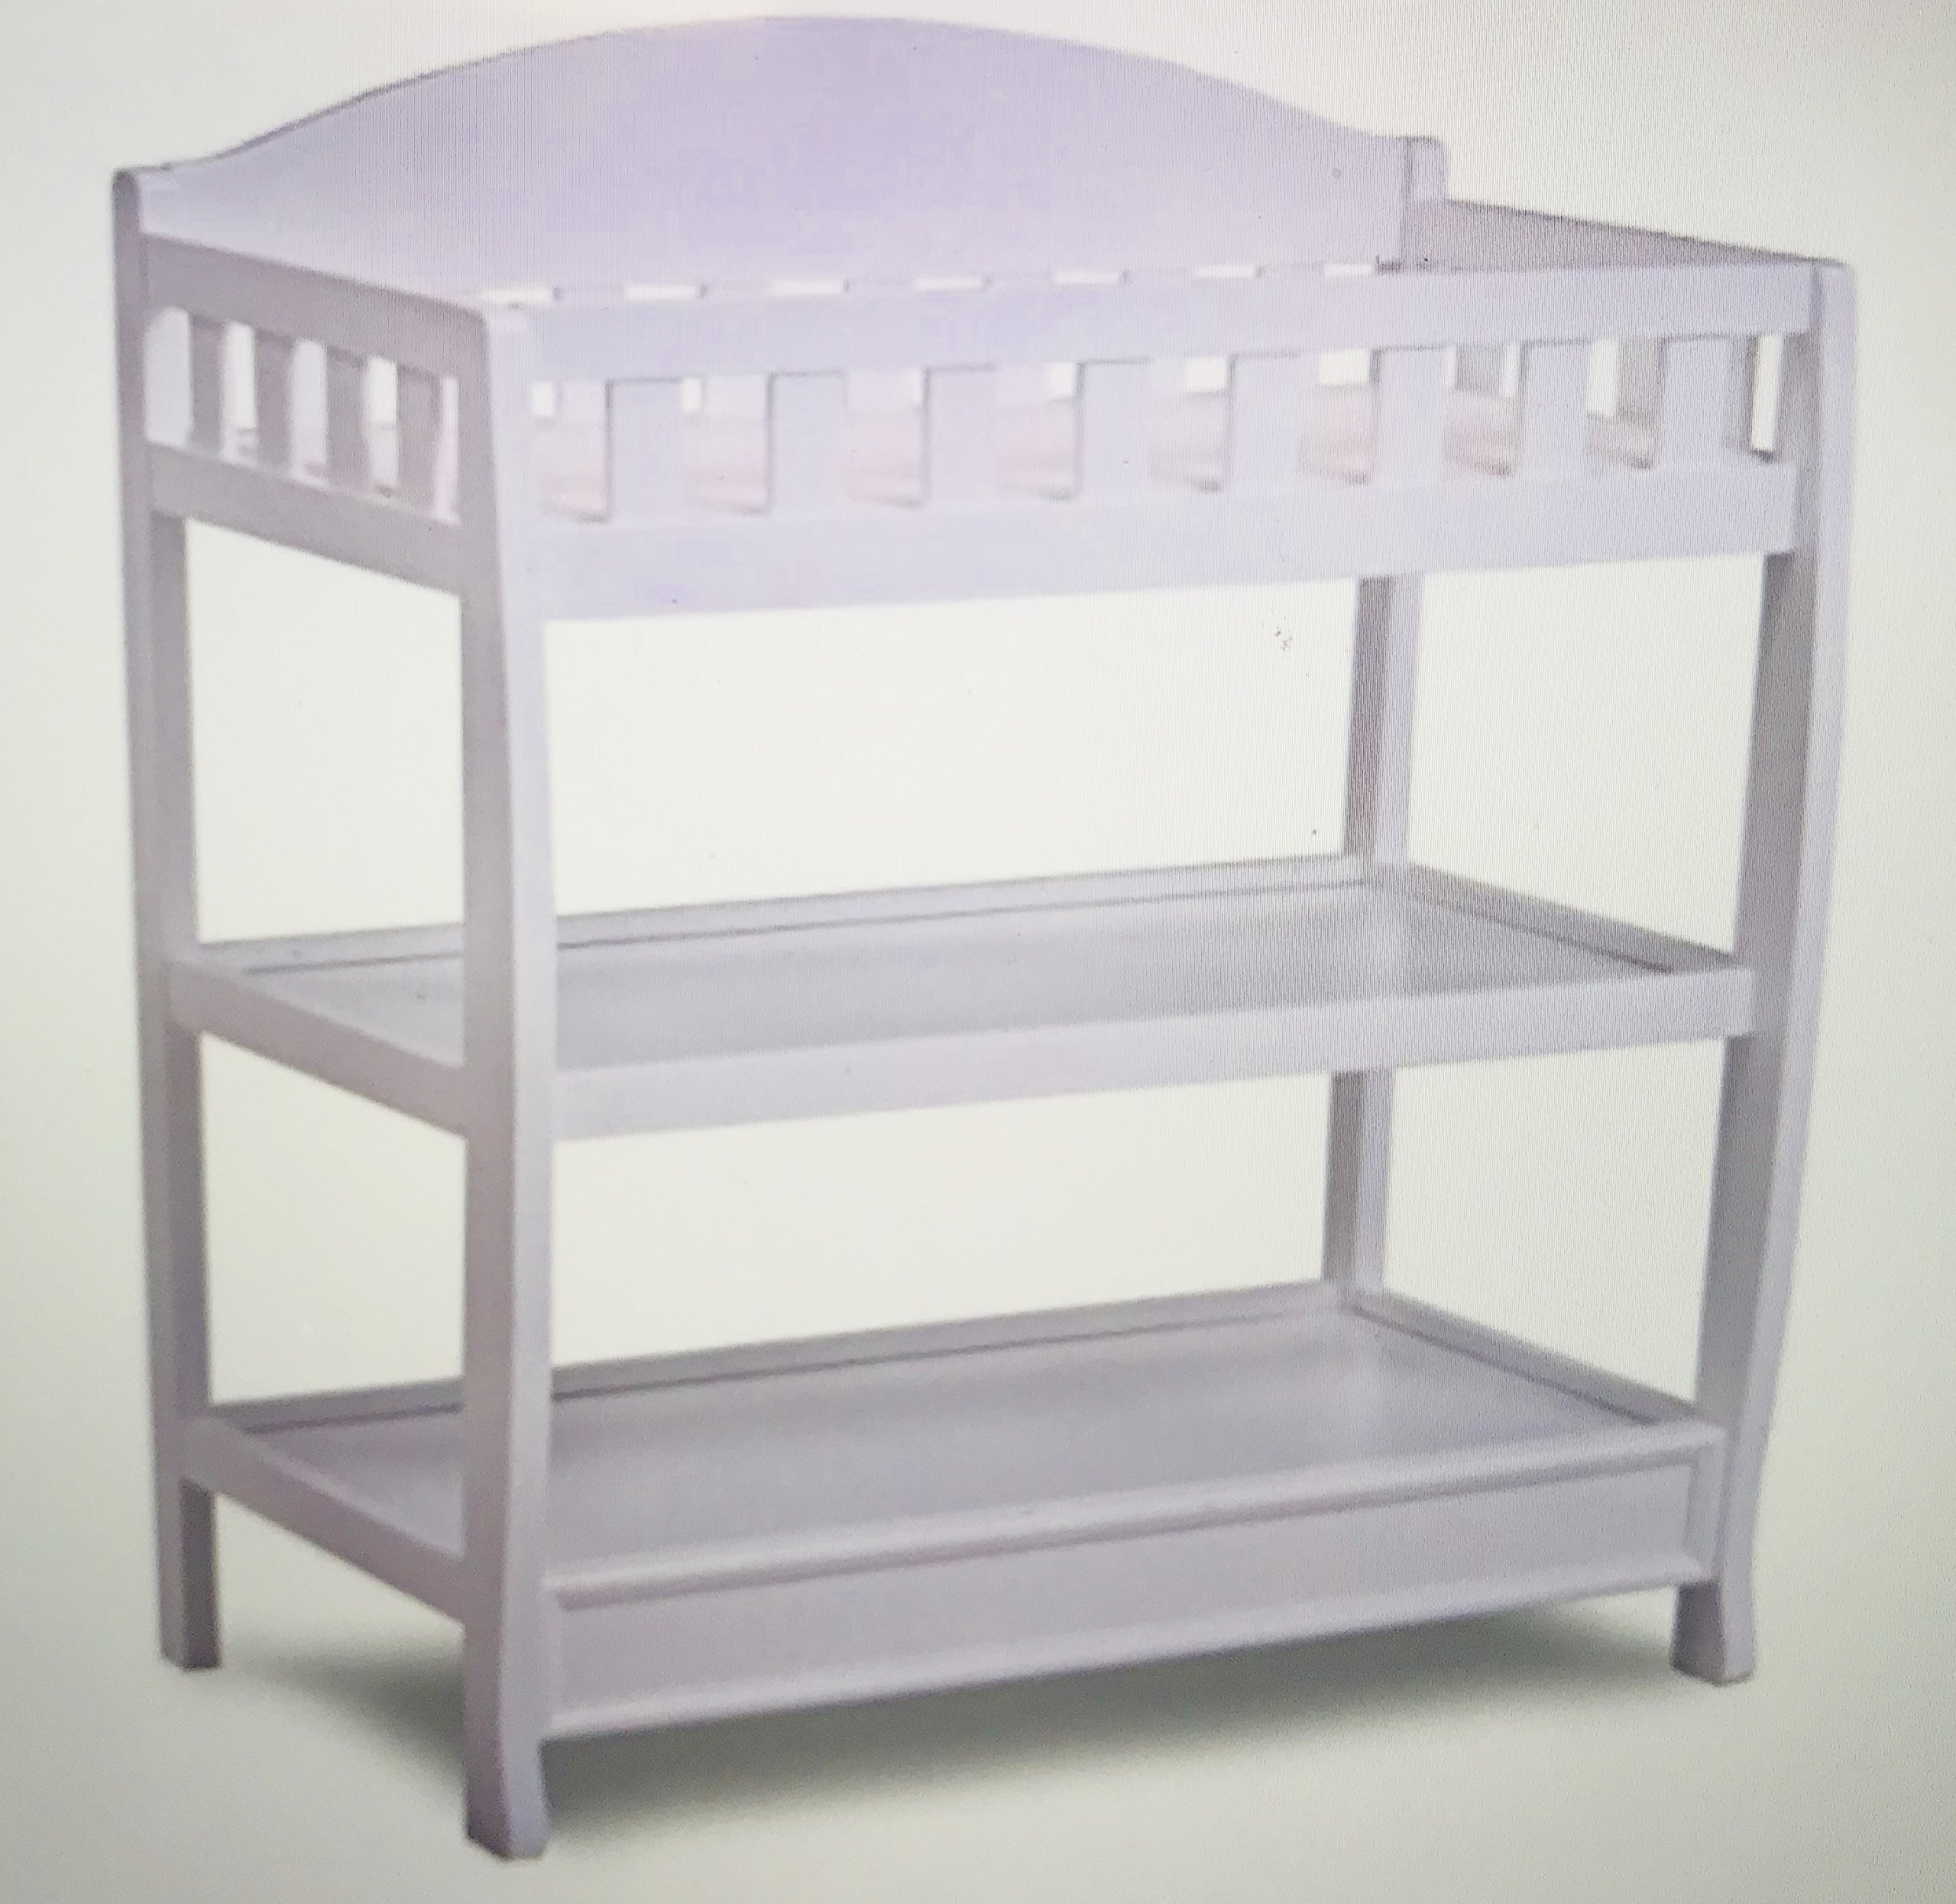 FCSF Infant Changing Table - Delta 7530-100